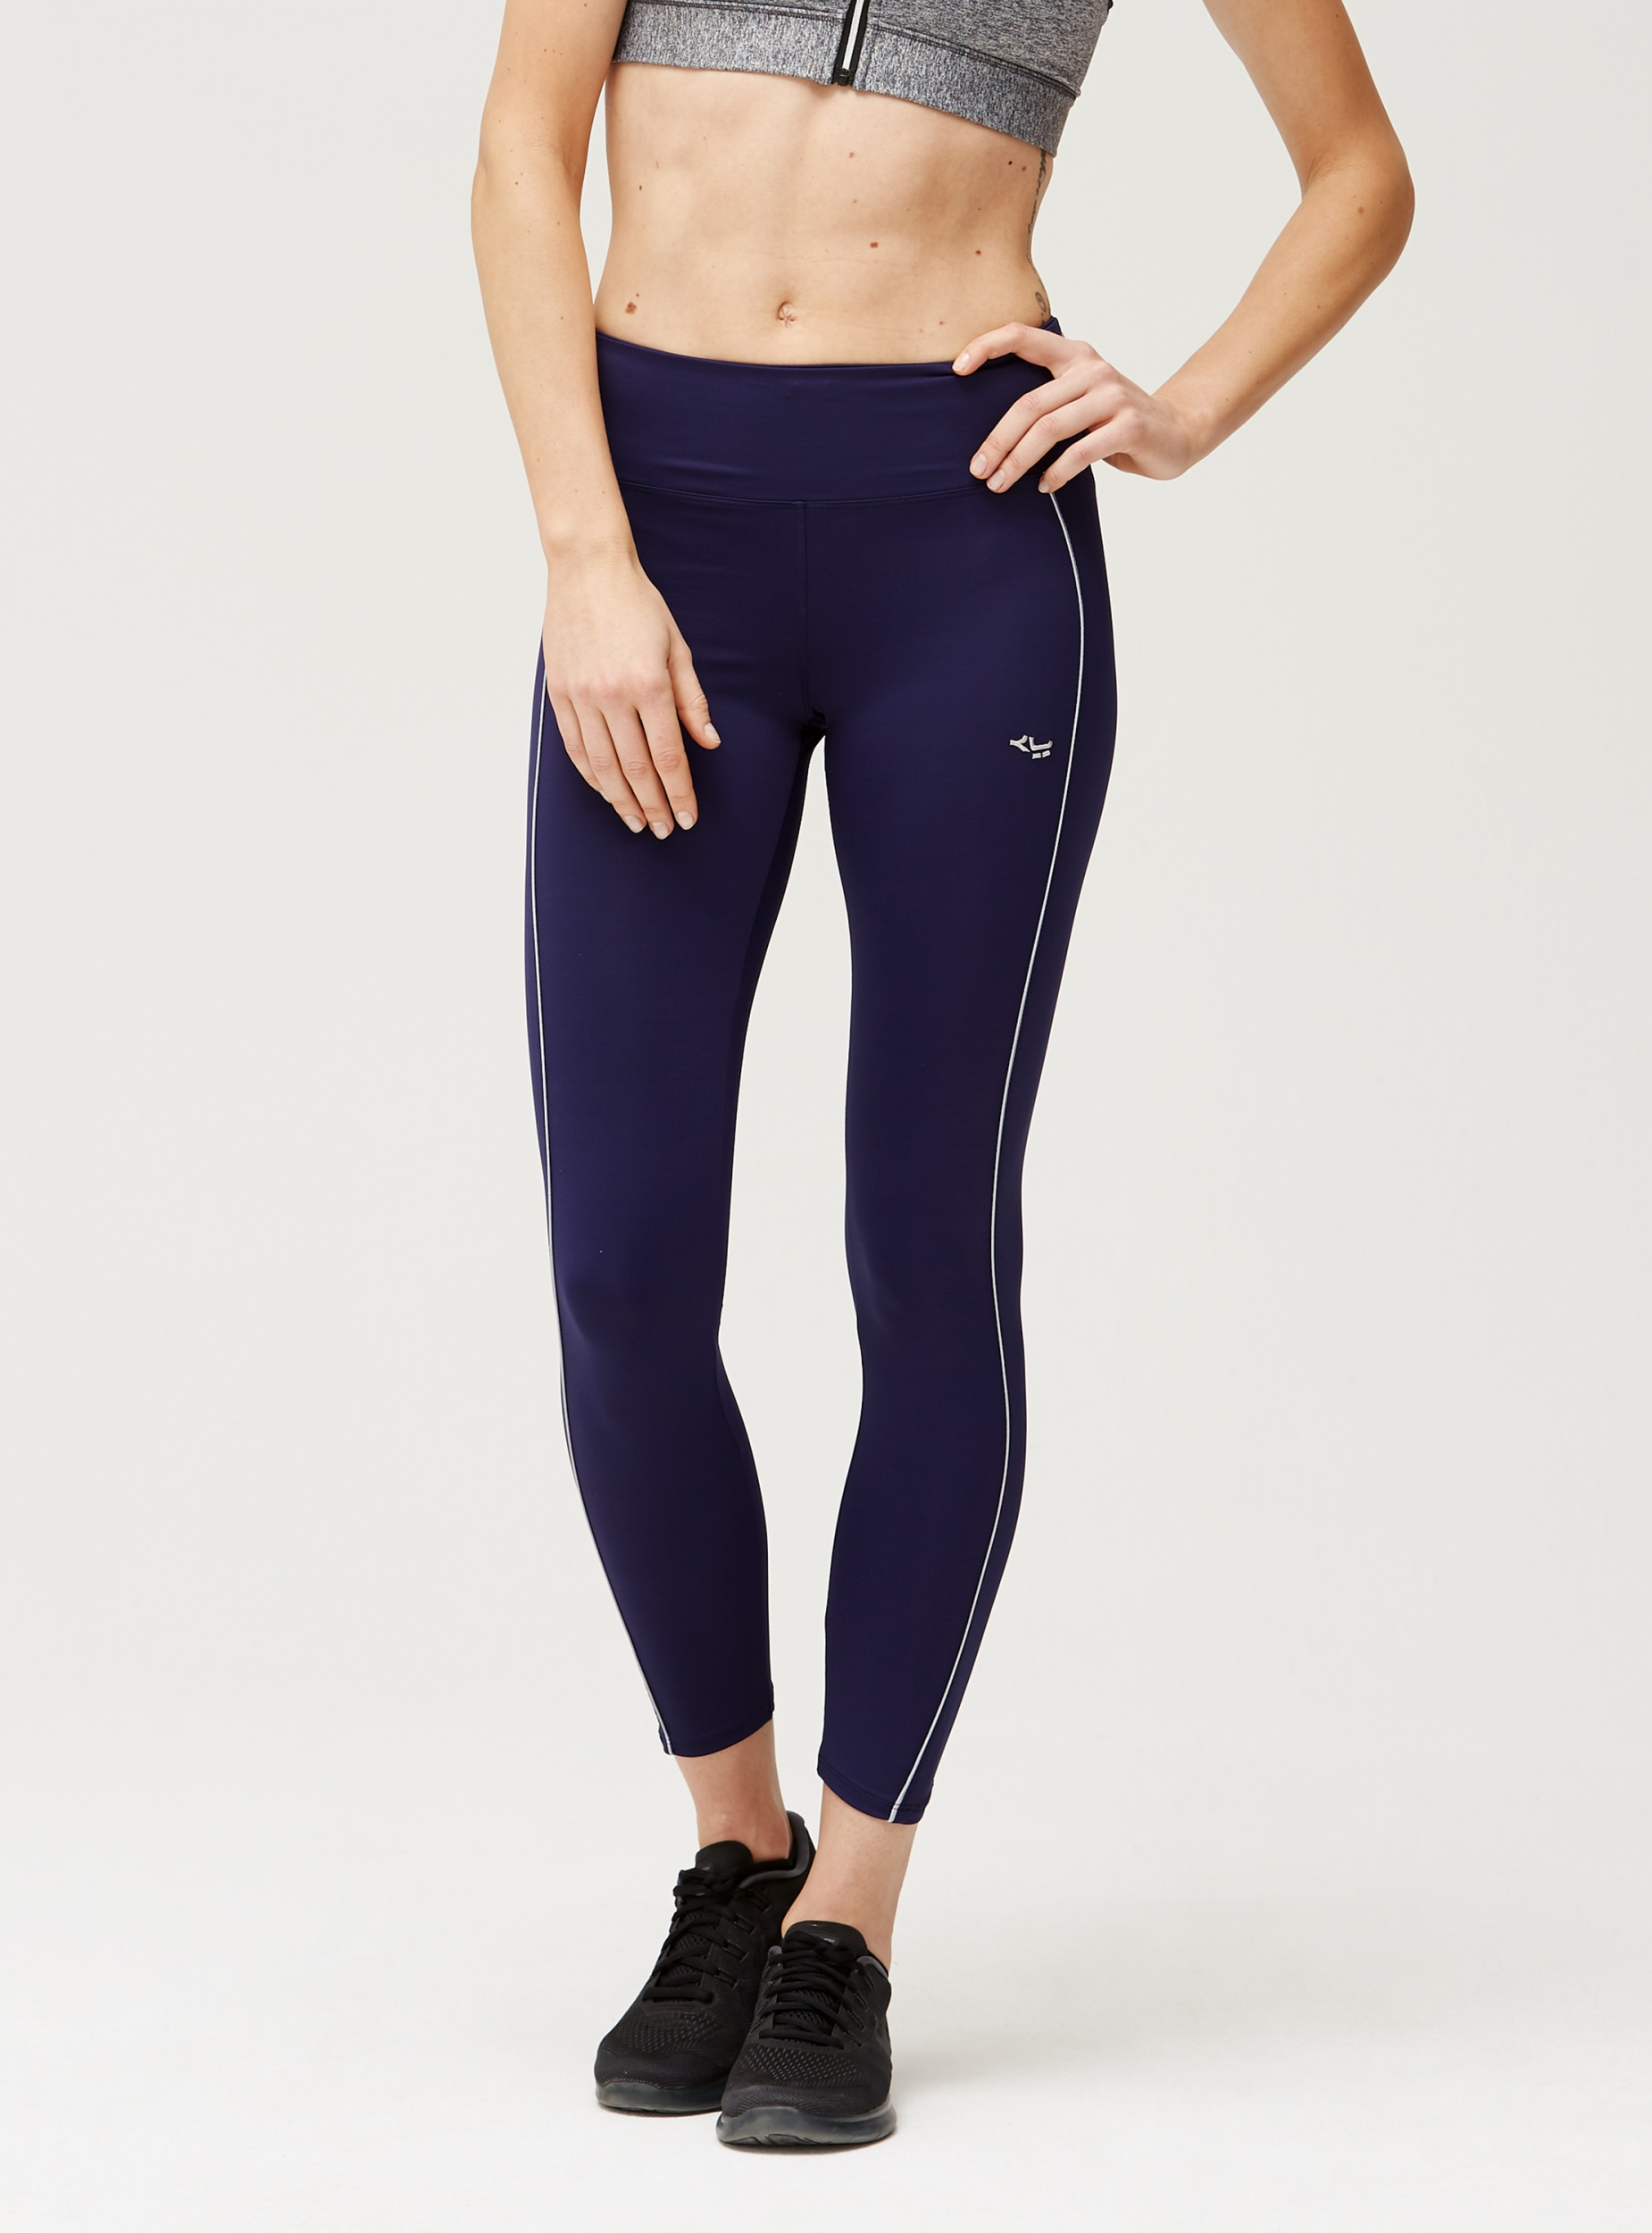 Shaping Sportlegging.Rohnisch Sport Laying Shape Sleek Ladies Dark Blue Internet